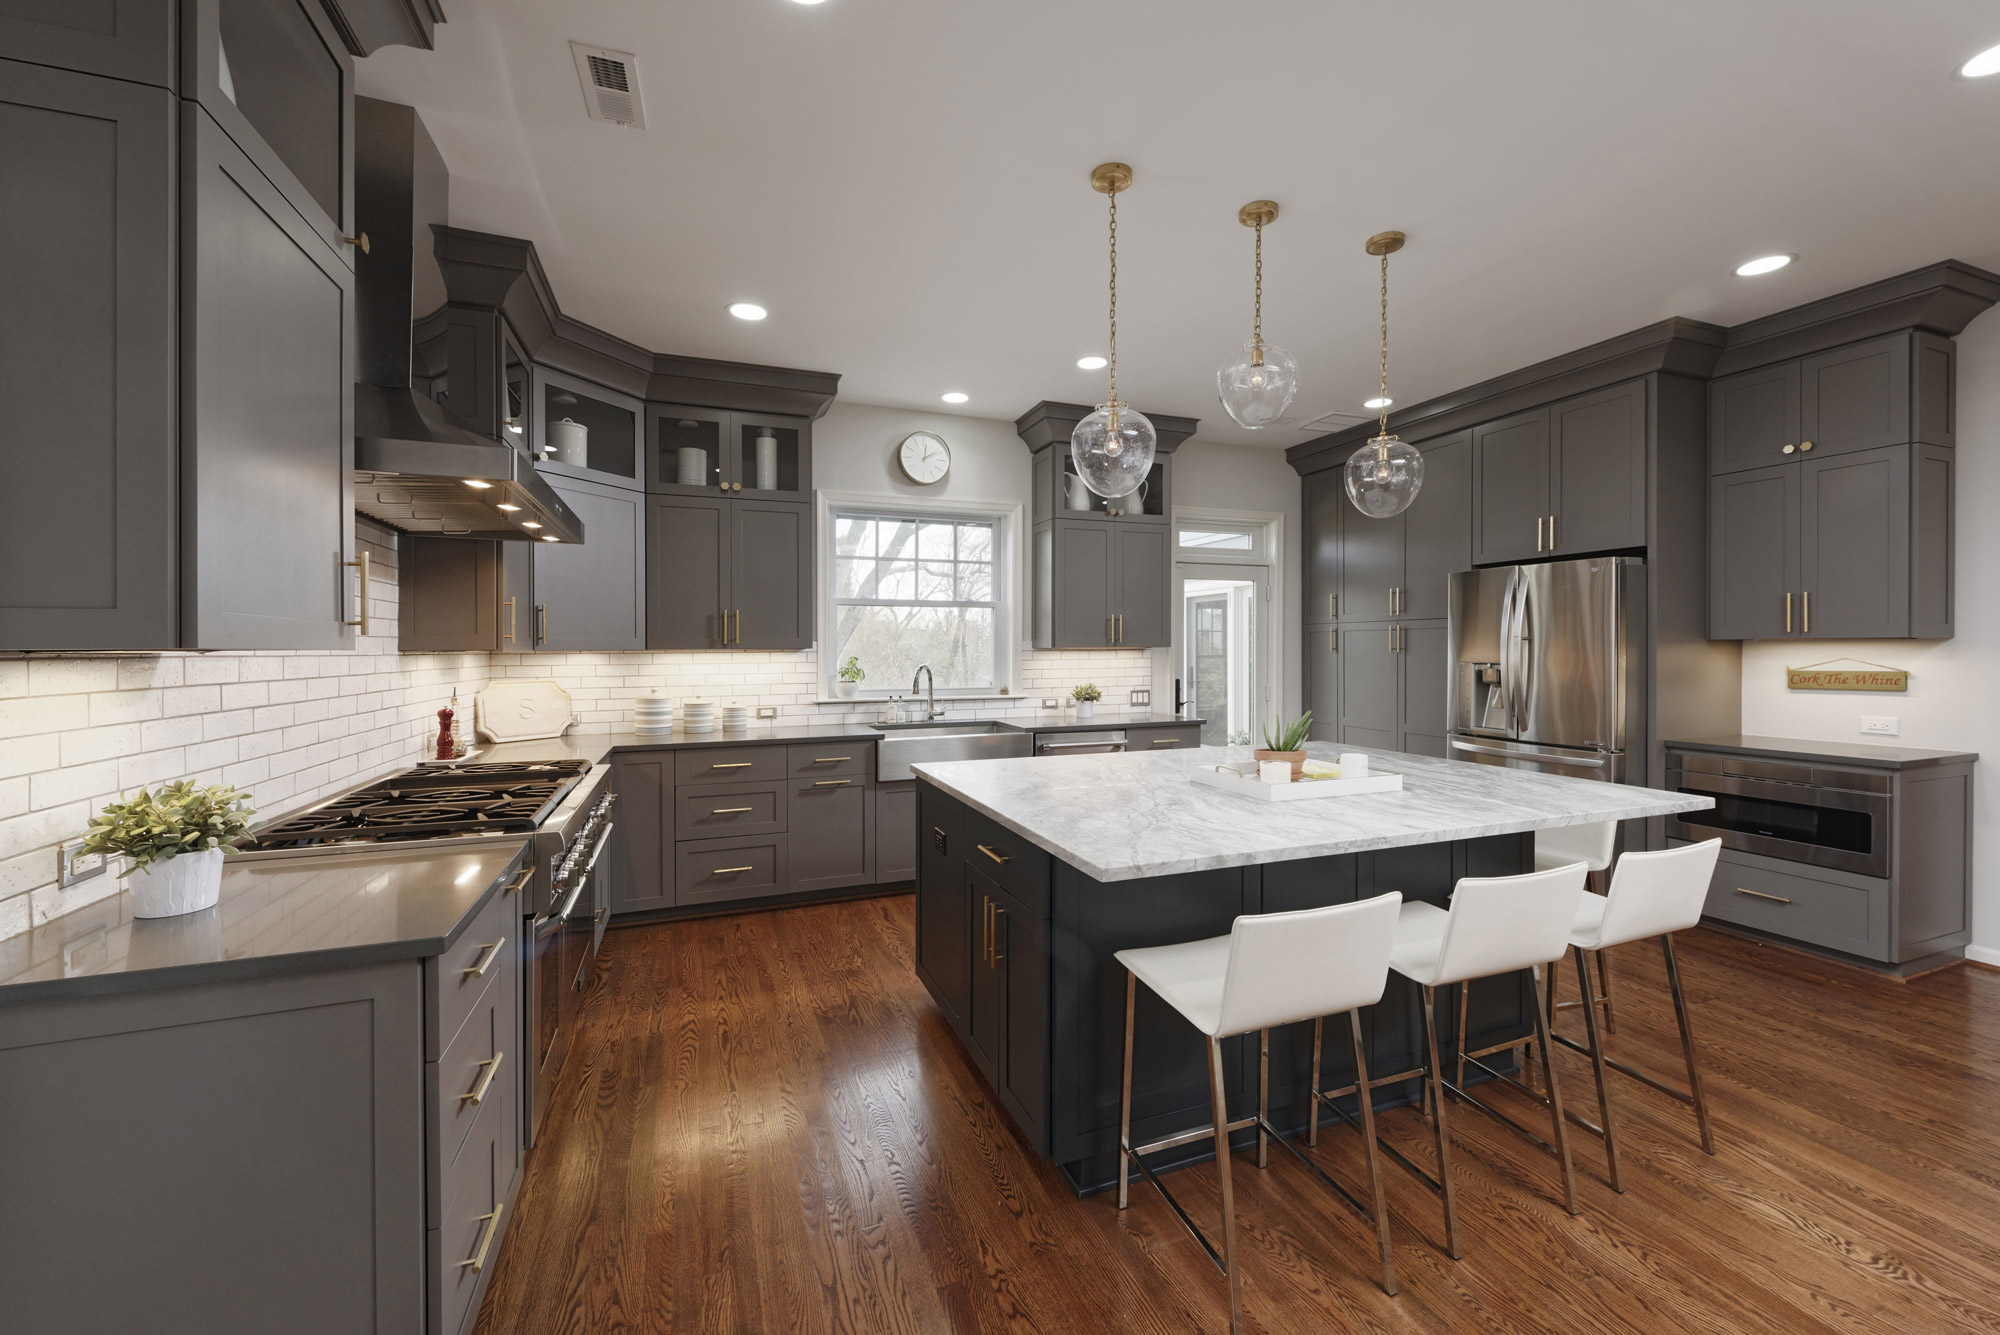 Dark gray cabinets in modern kitchen remodel